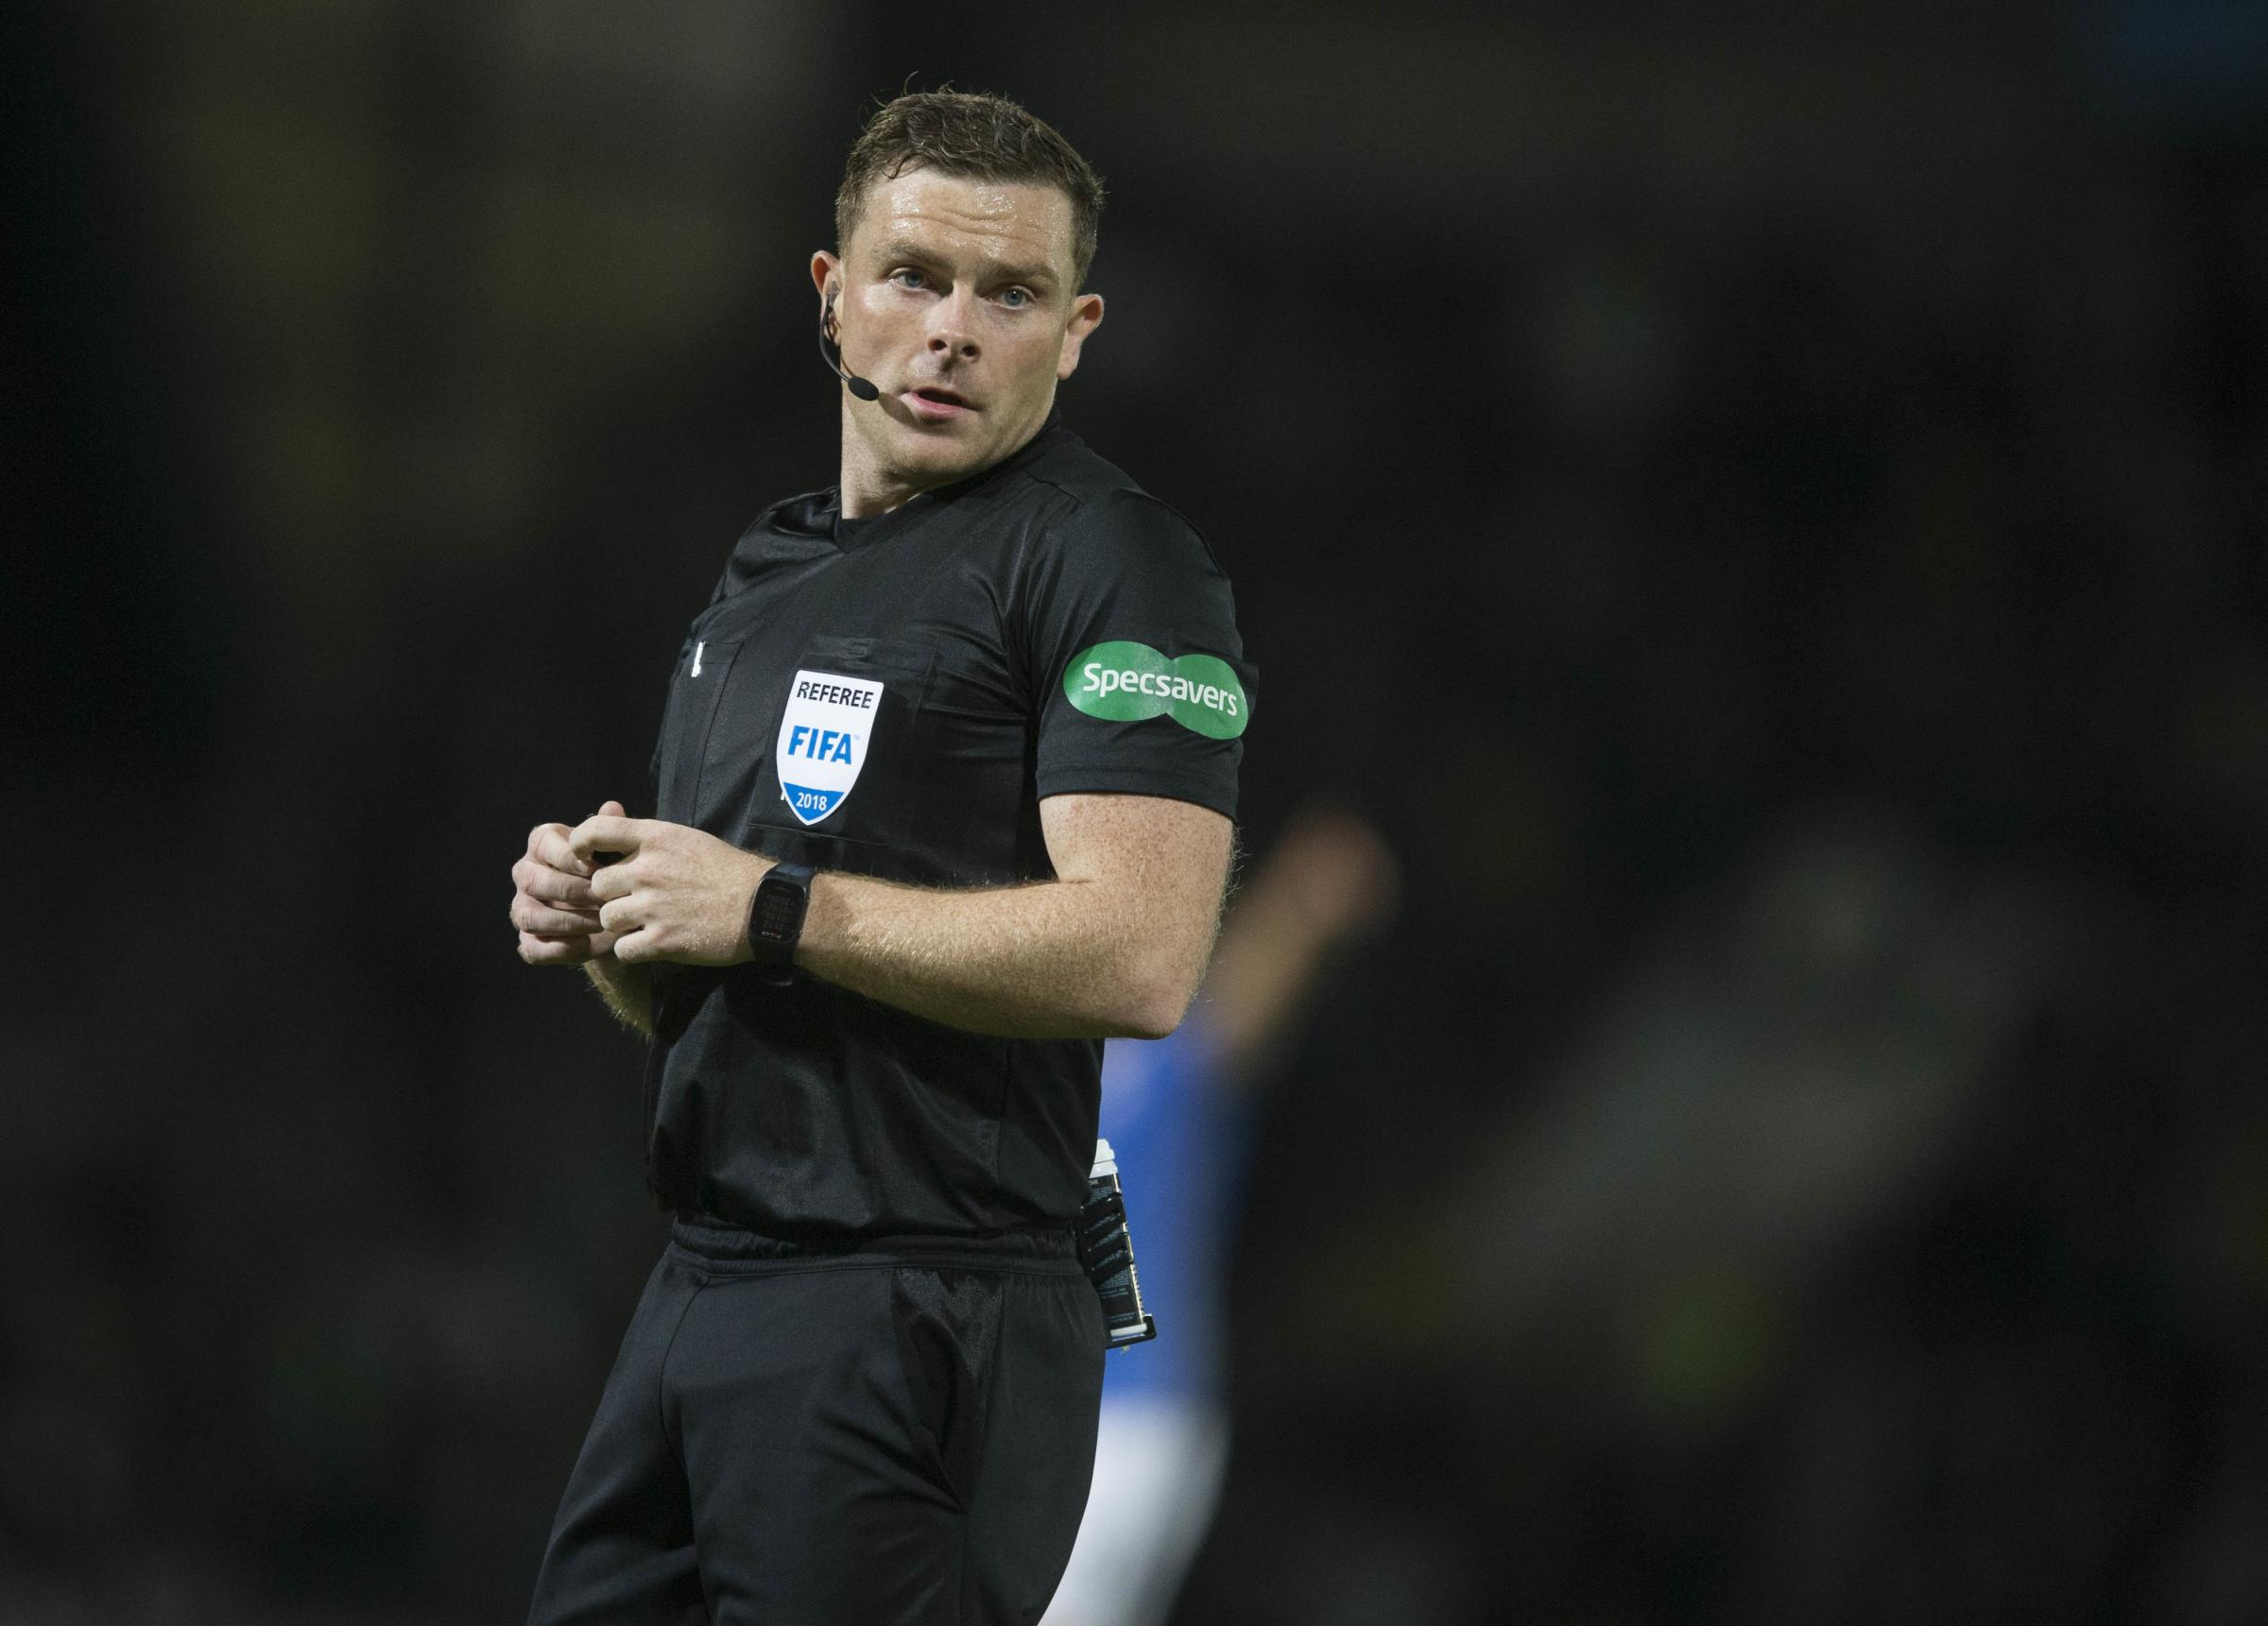 File photo dated 26-09-2018 of Referee John Beaton PRESS ASSOCIATION Photo. Issue date: Saturday January 5, 2019. Referee John Beaton has called in police after being targeted with threatening messages online in the wake of last weekend's Old Firm cla